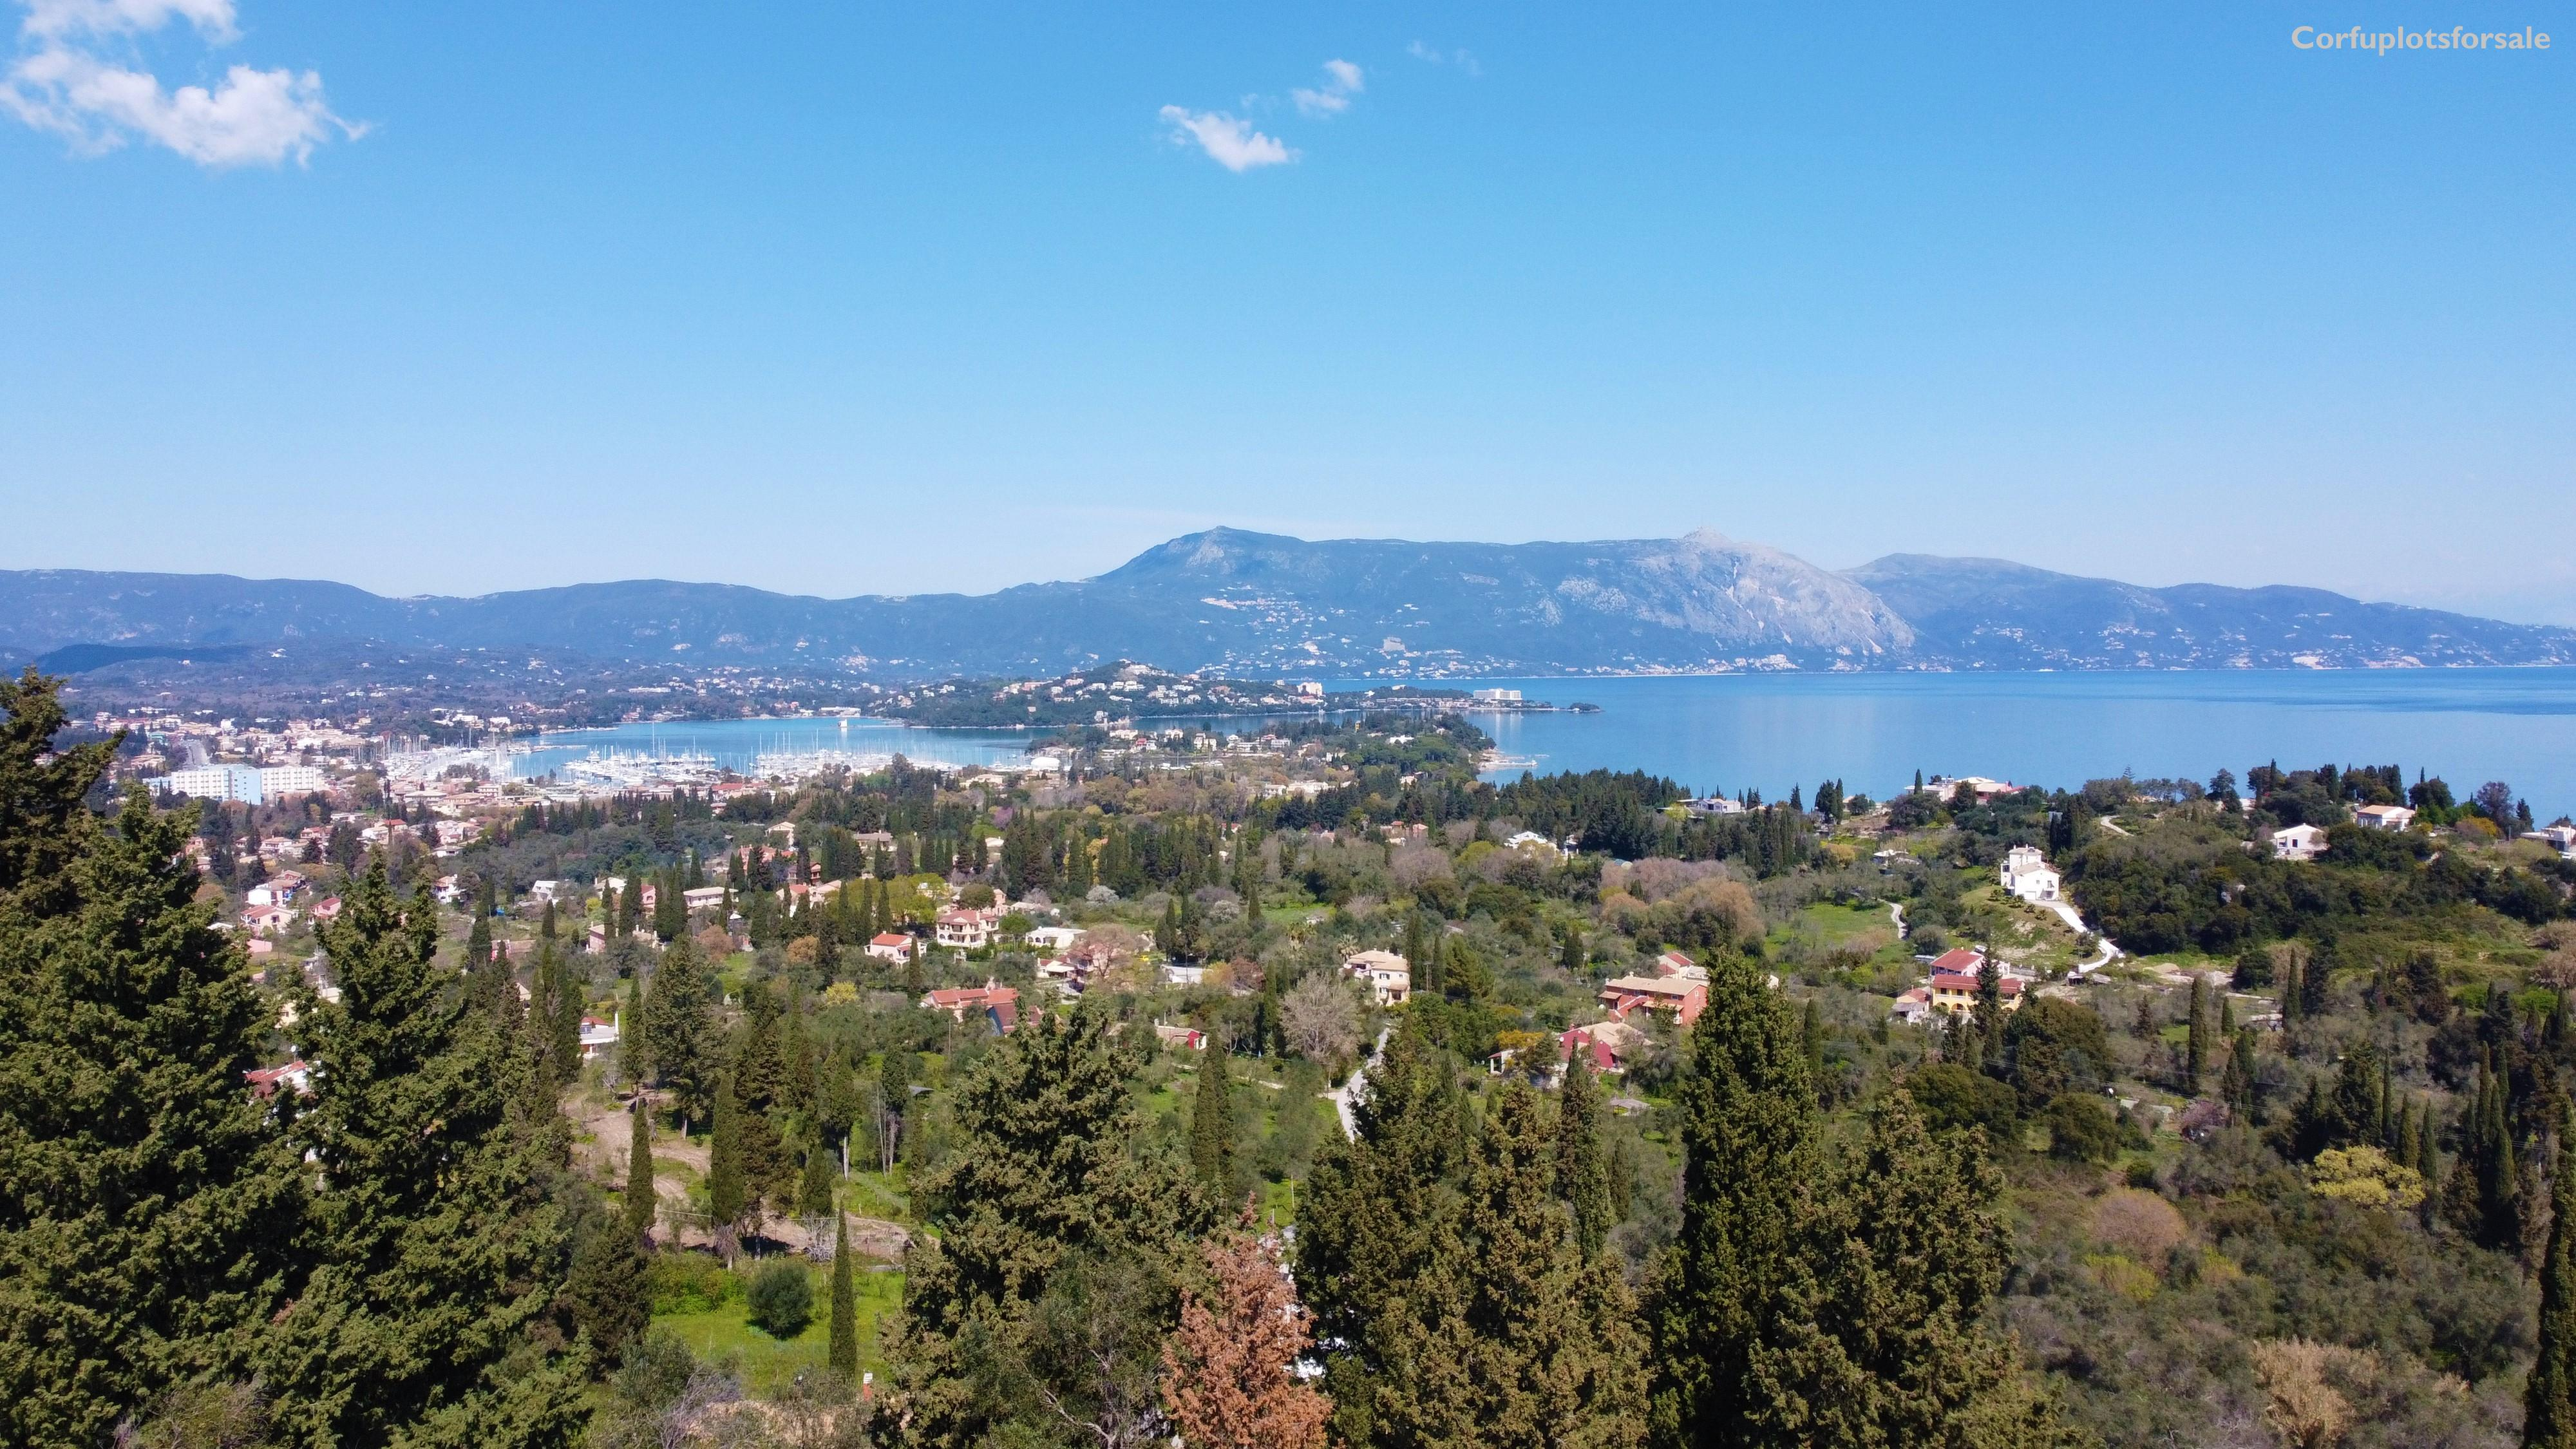 Spectacular view outside of Corfu City